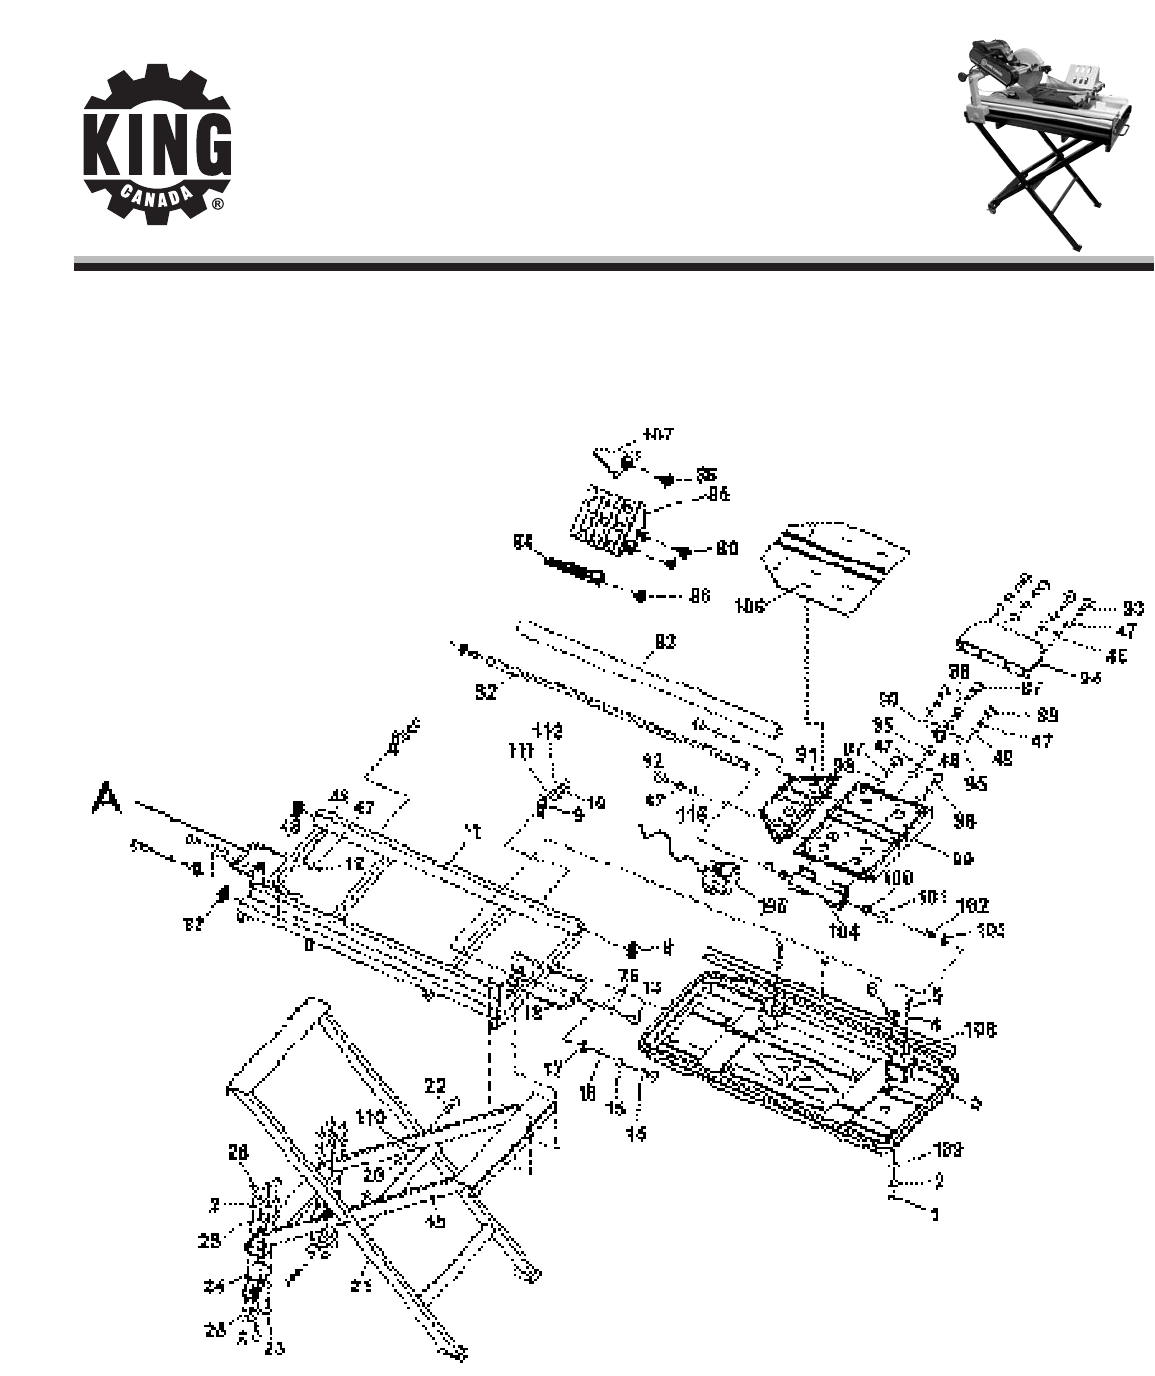 King Canada Saw Kc User Guide